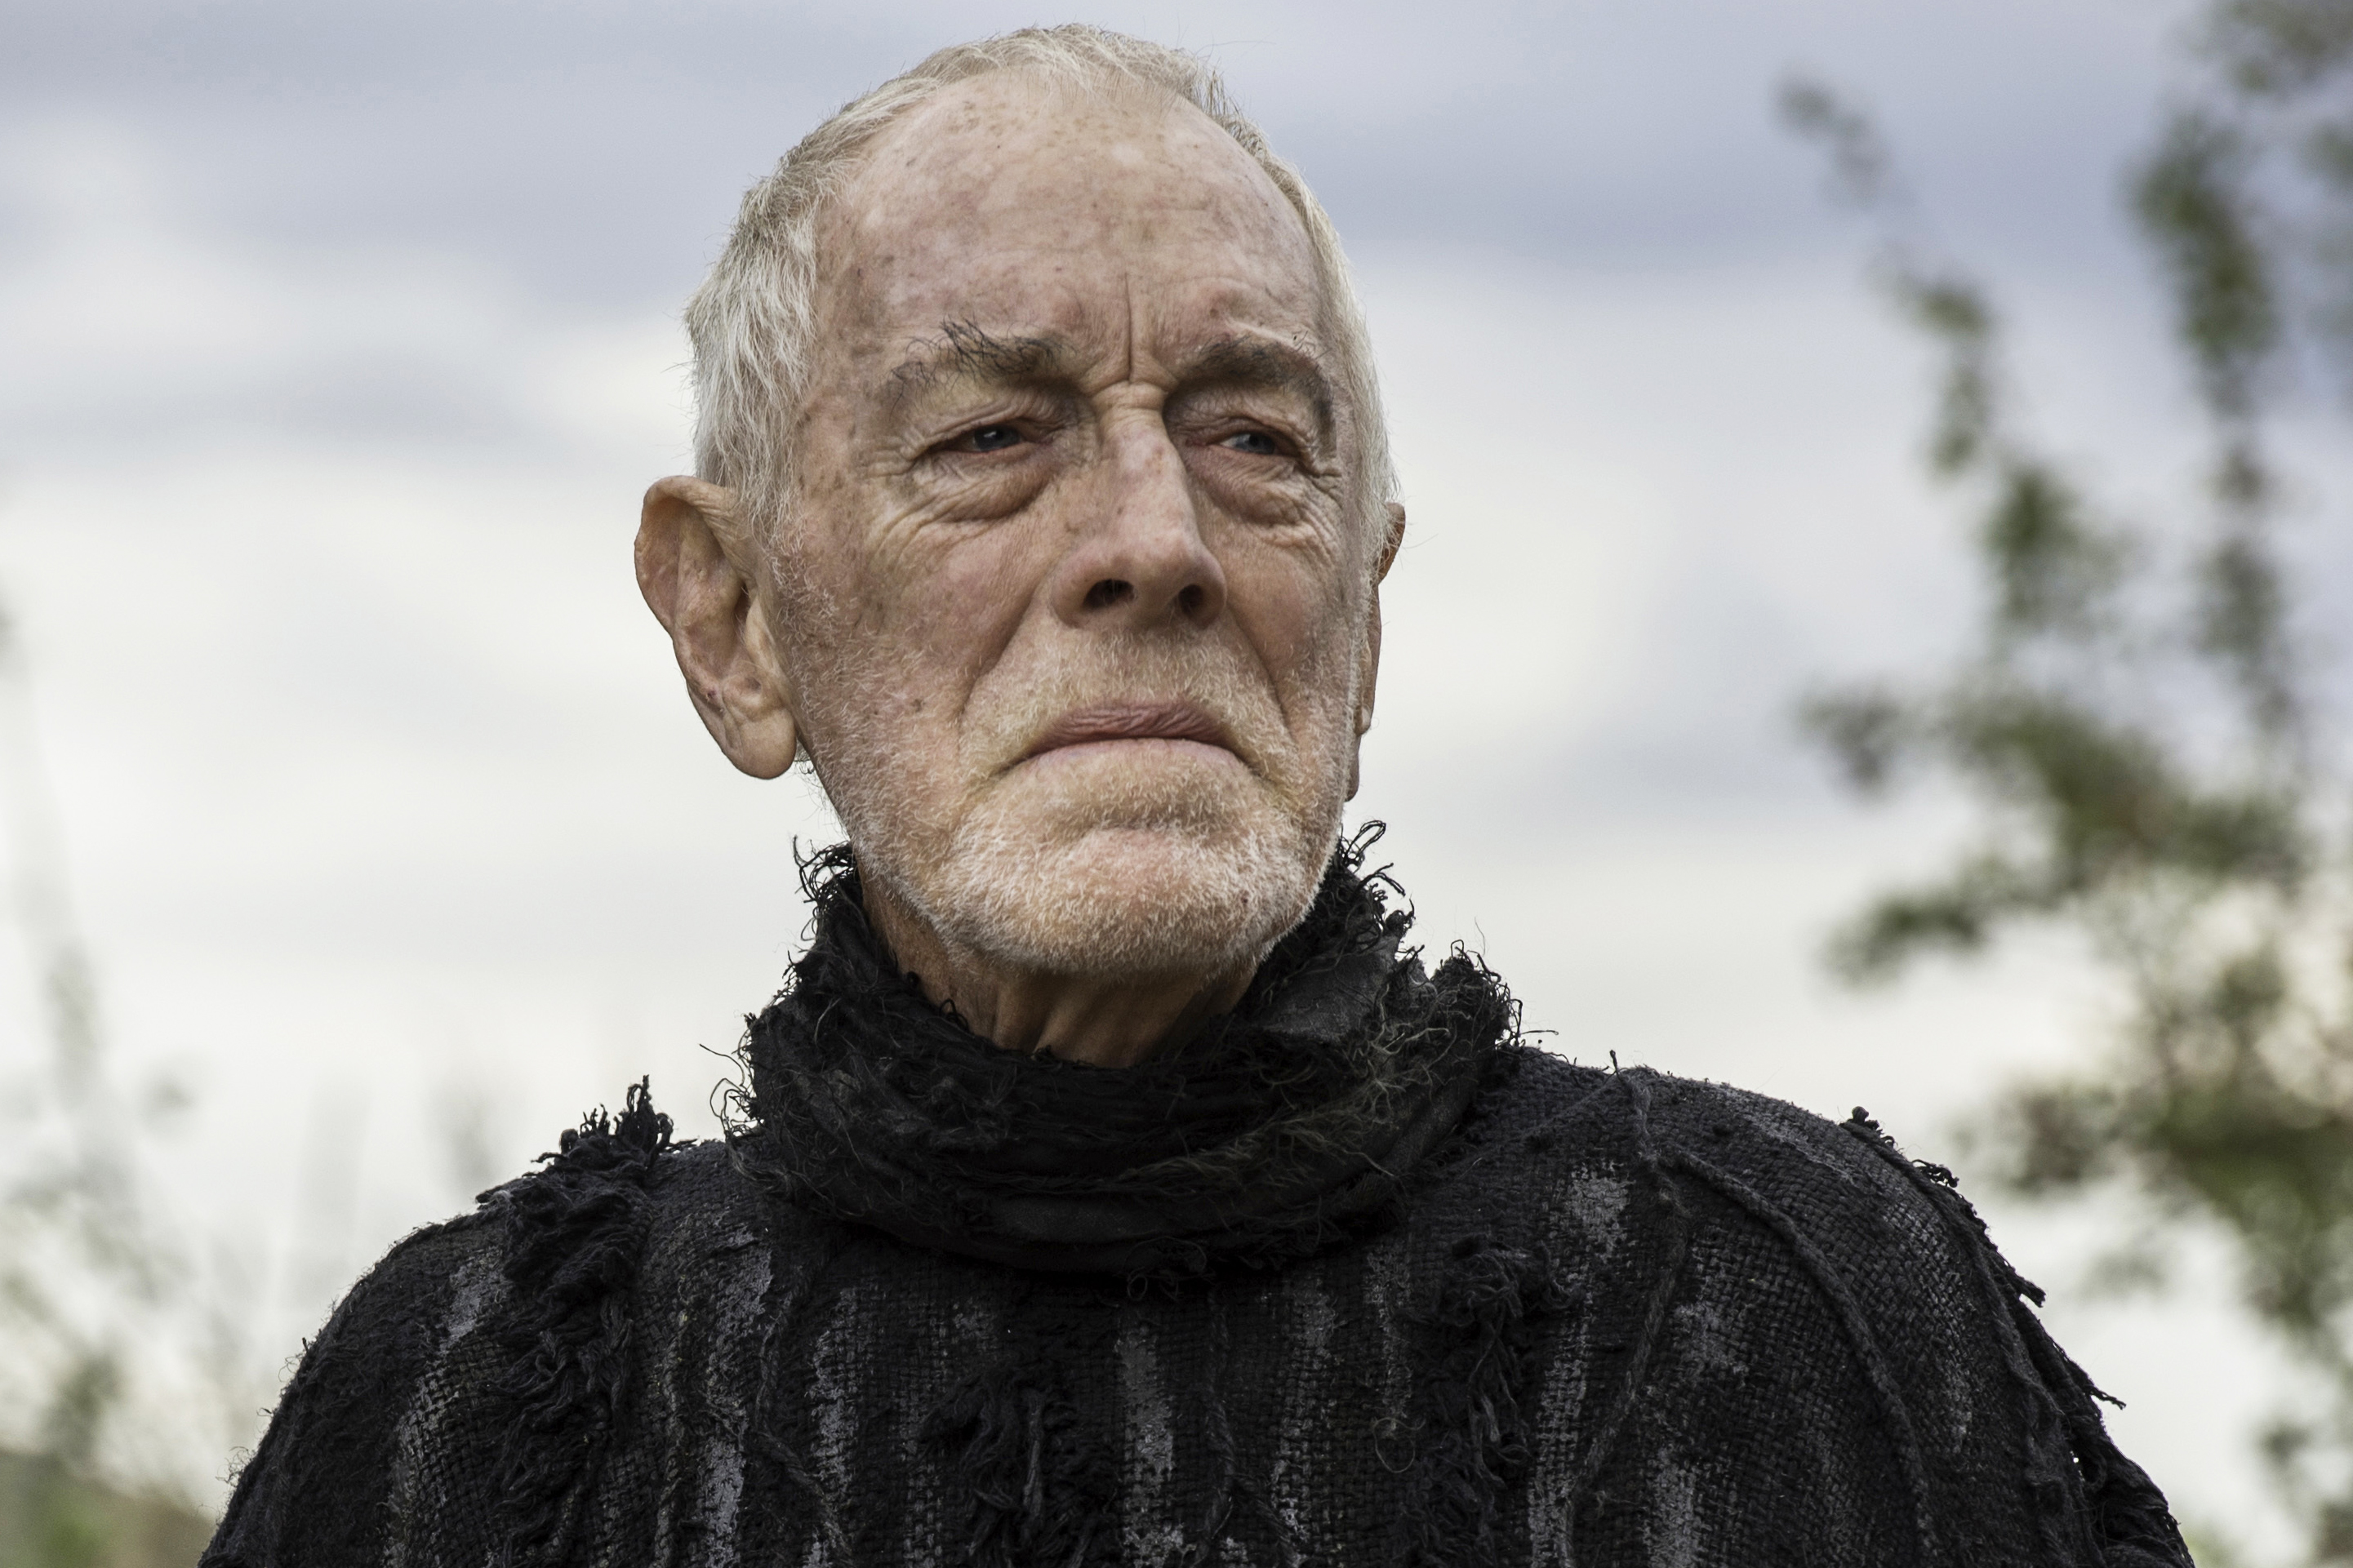 Max von Sydow in Game of Thrones season 6, episode 3.